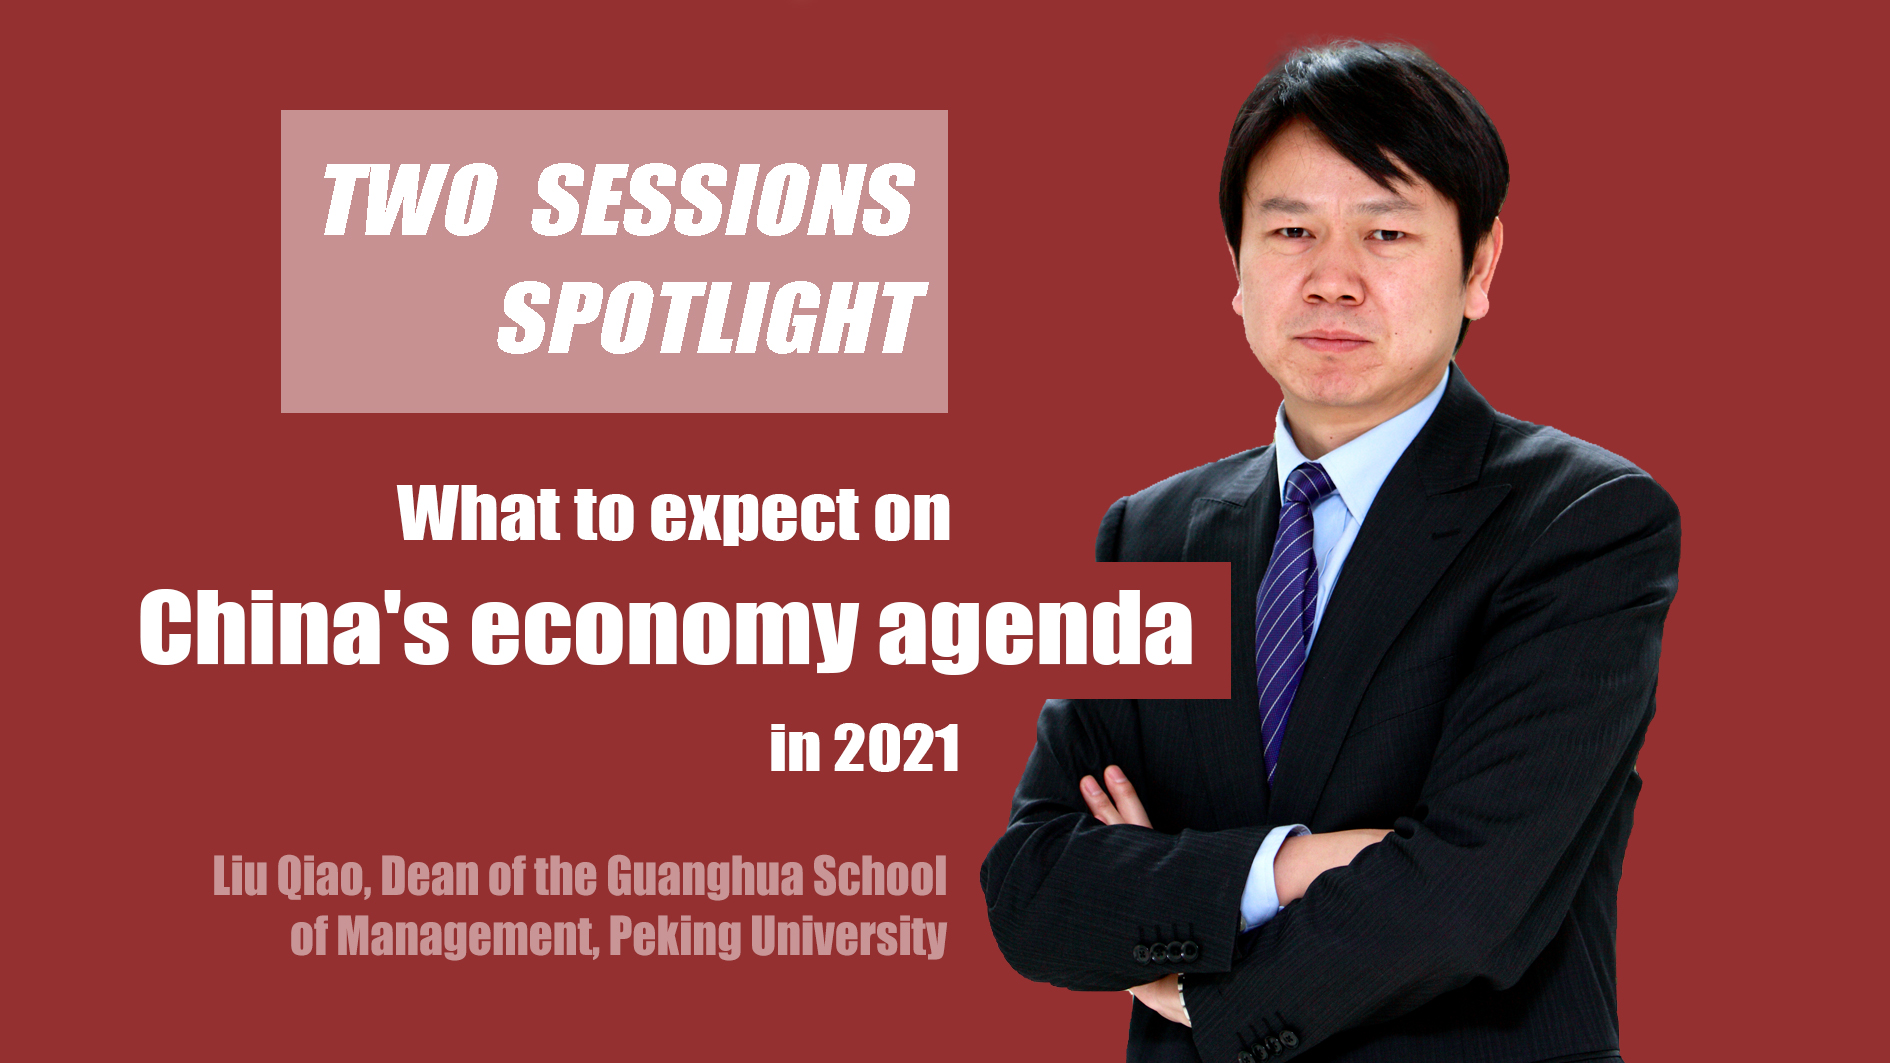 Two Sessions Spotlight: What to expect on China's economy agenda in 2021